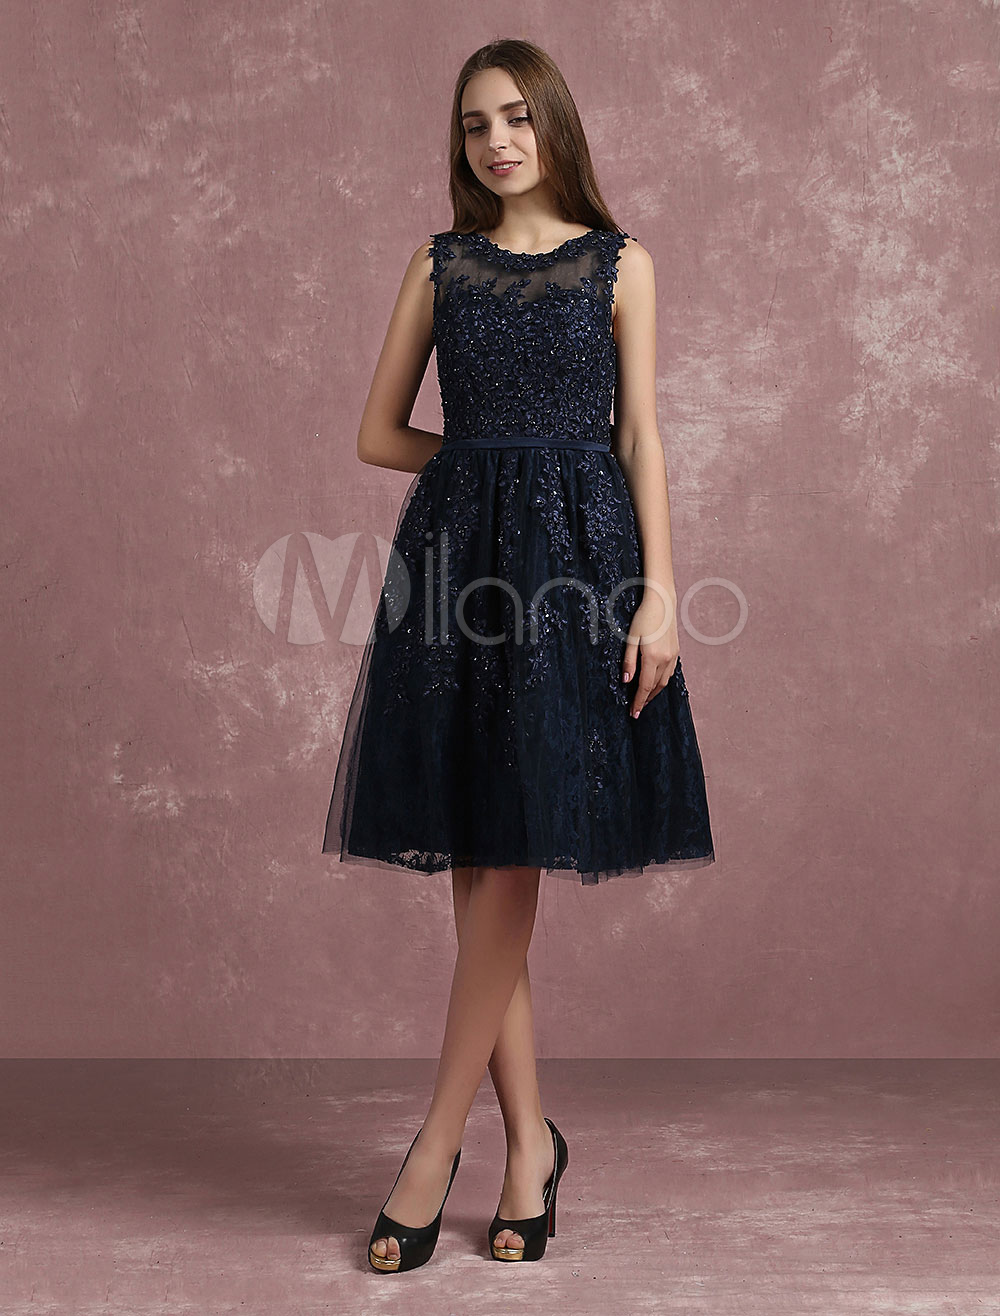 Buy Tulle Cocktail Dress Illusion Lace Applique Beaded Homecoming Dress Dark Navy Sleeveless A Line Knee Length Party Dress for $152.99 in Milanoo store